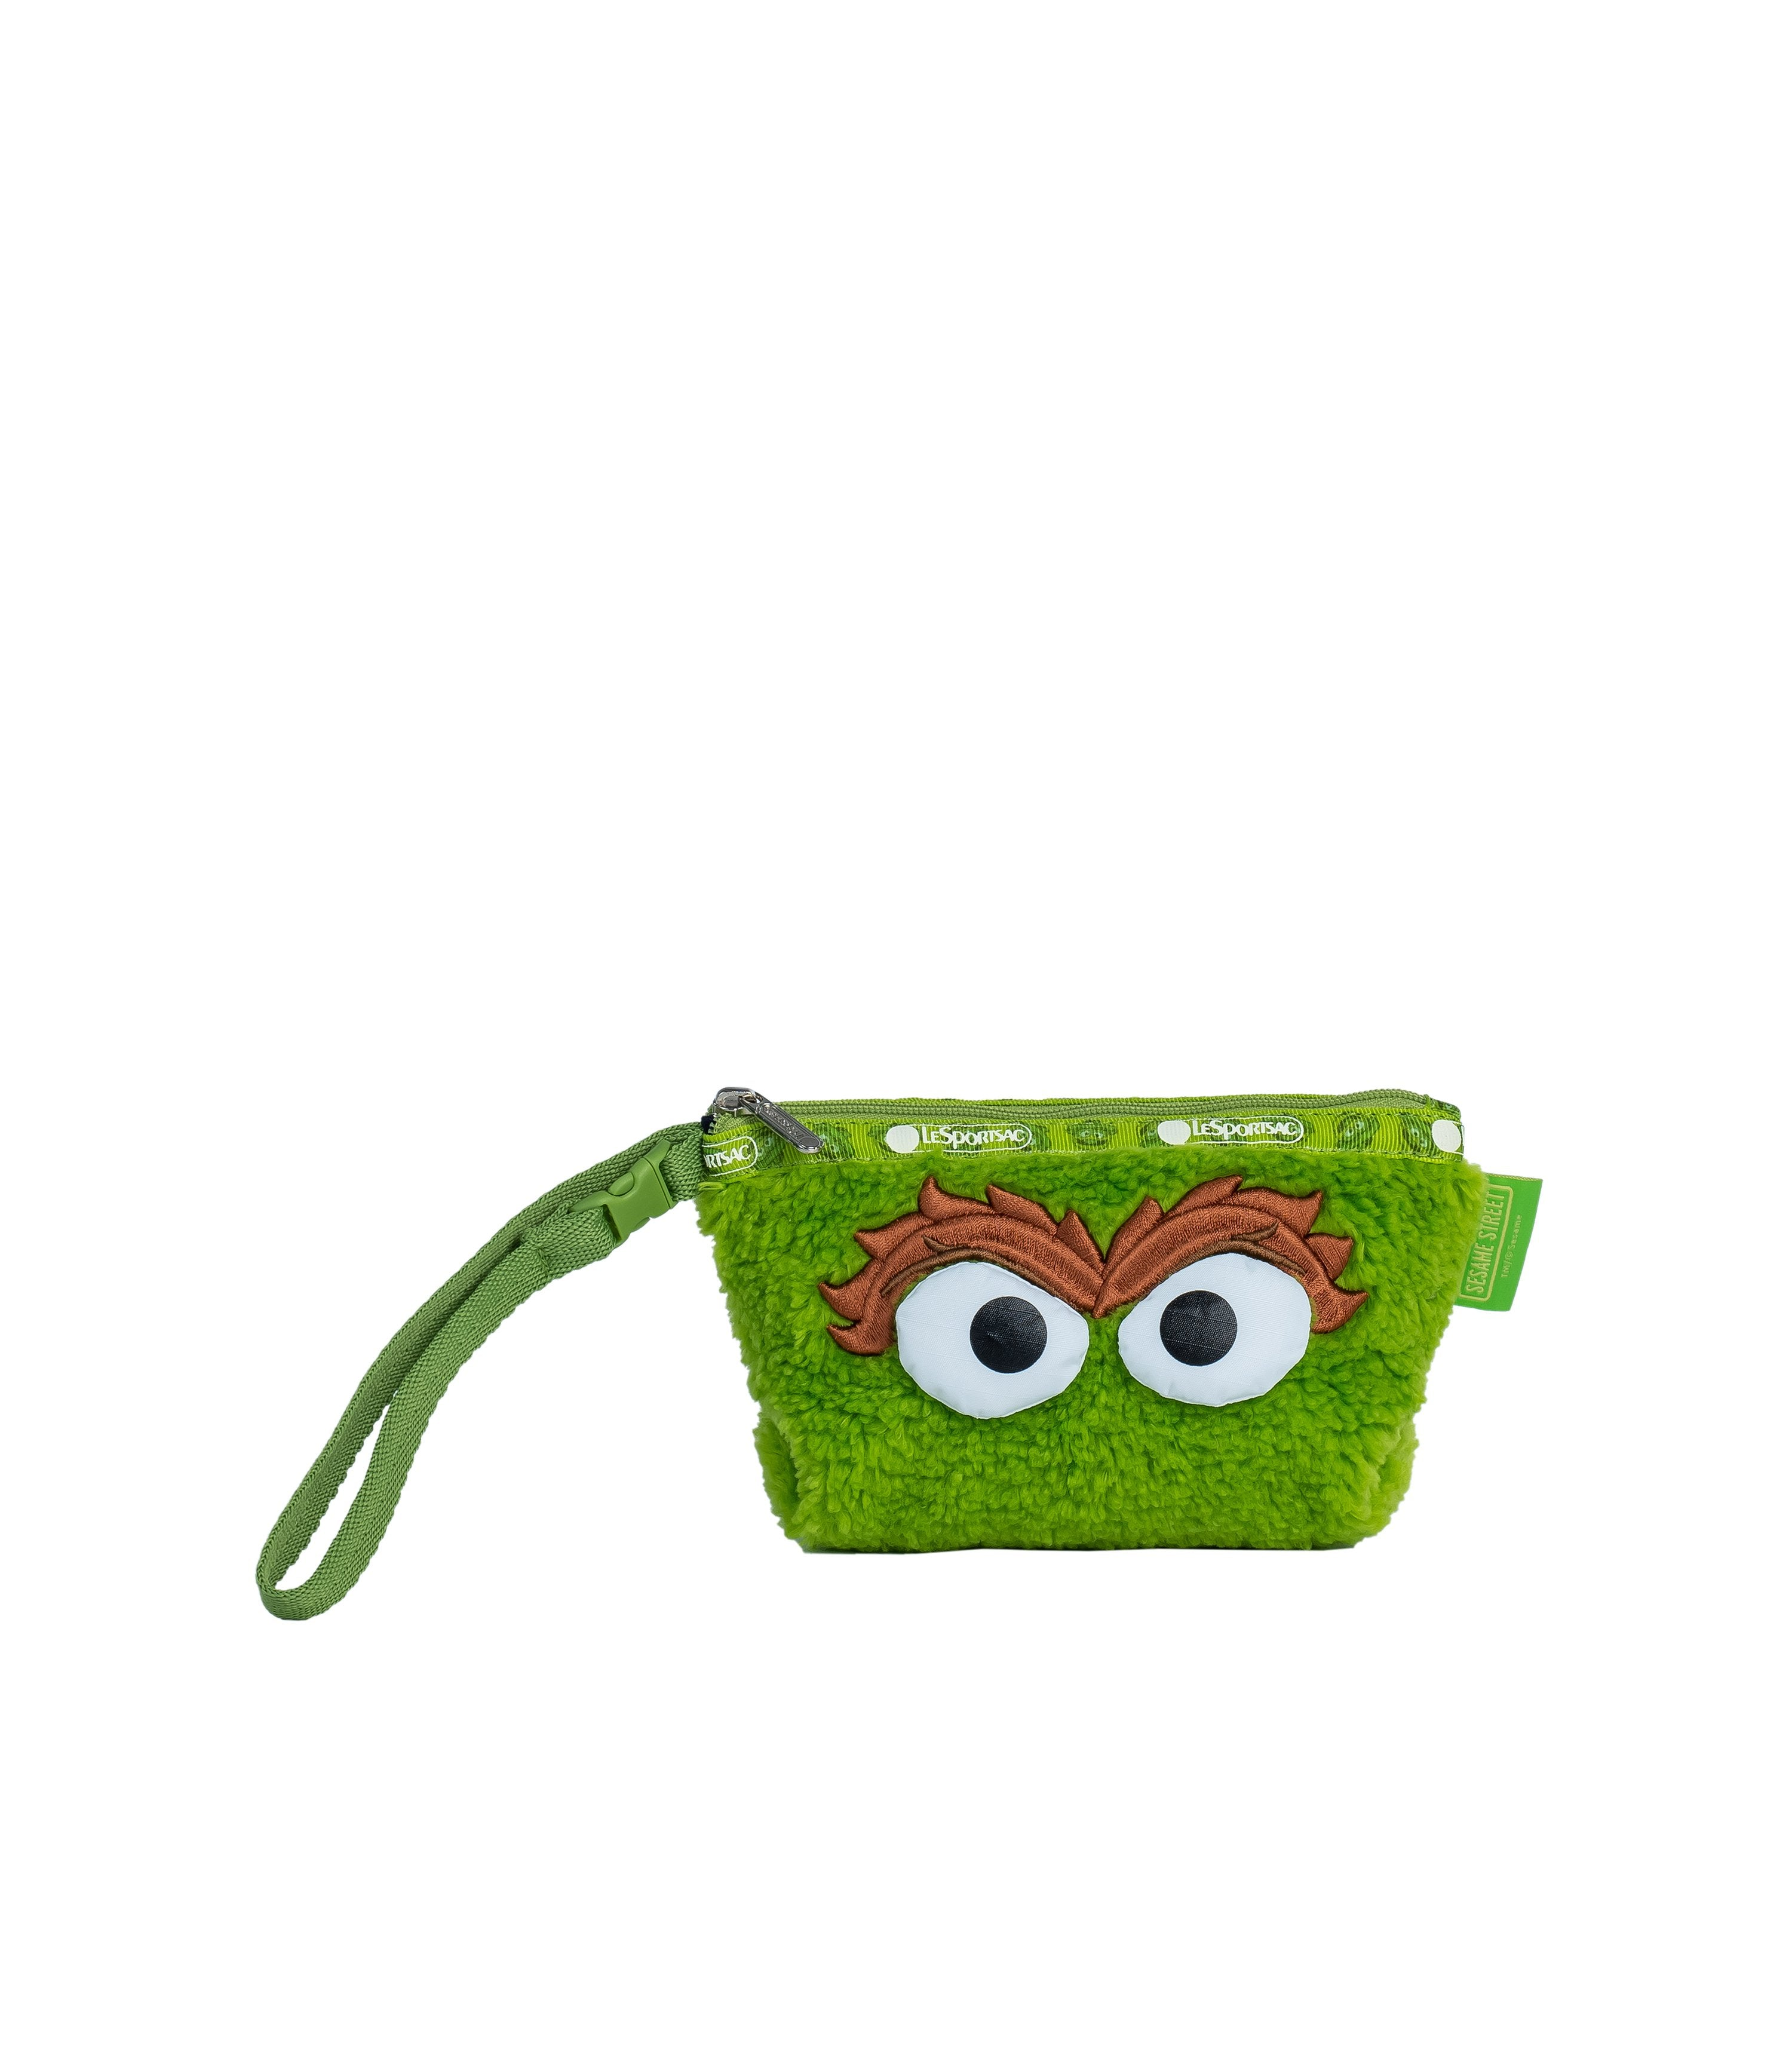 LeSportsac - Accessories - Small Cosmetic Wristlet - Oscar The Grouch